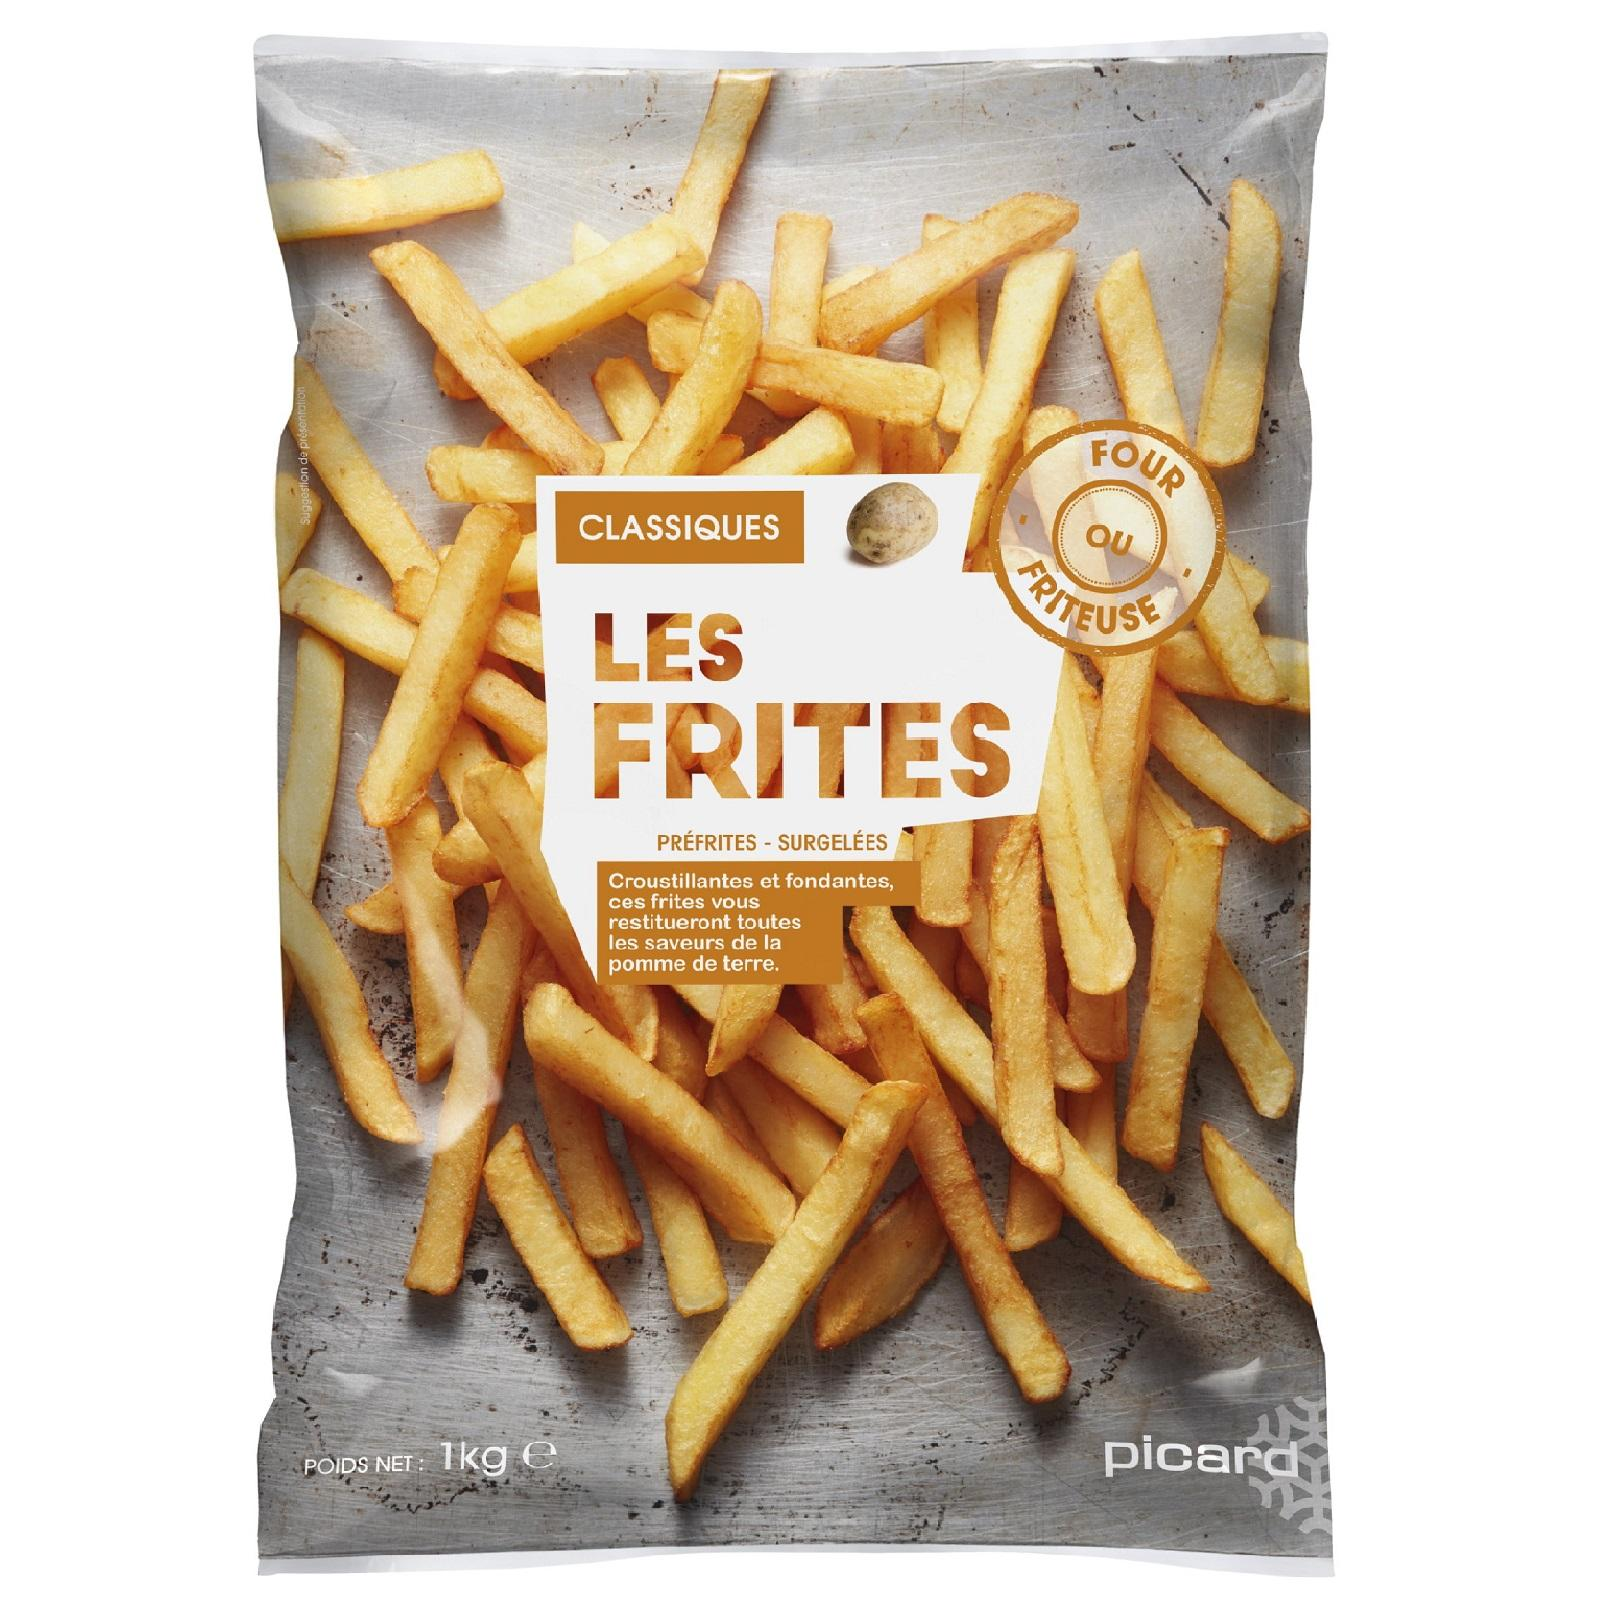 Picard Oven Ready French Fries - Frozen